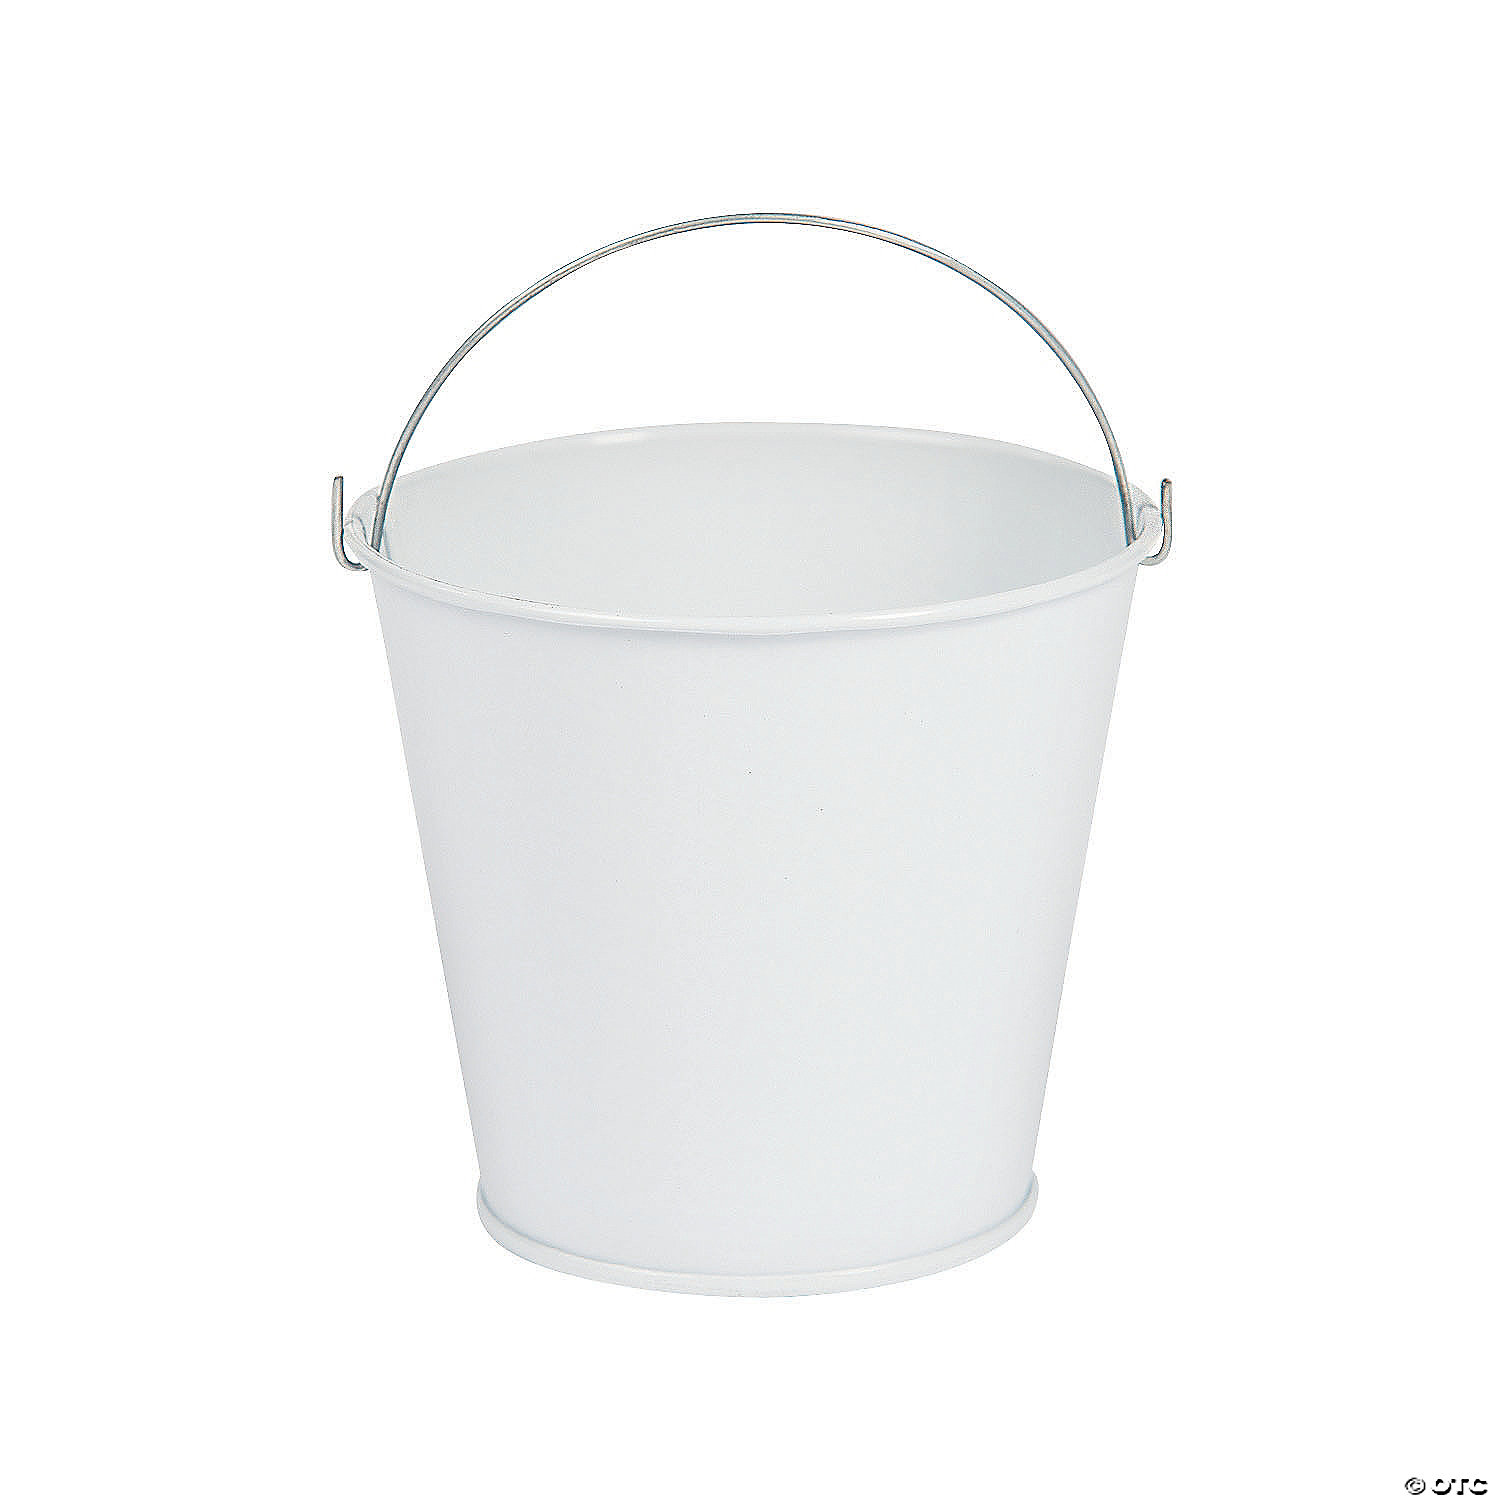 quickview  image of Mini White Favor Pails with sku:52/43